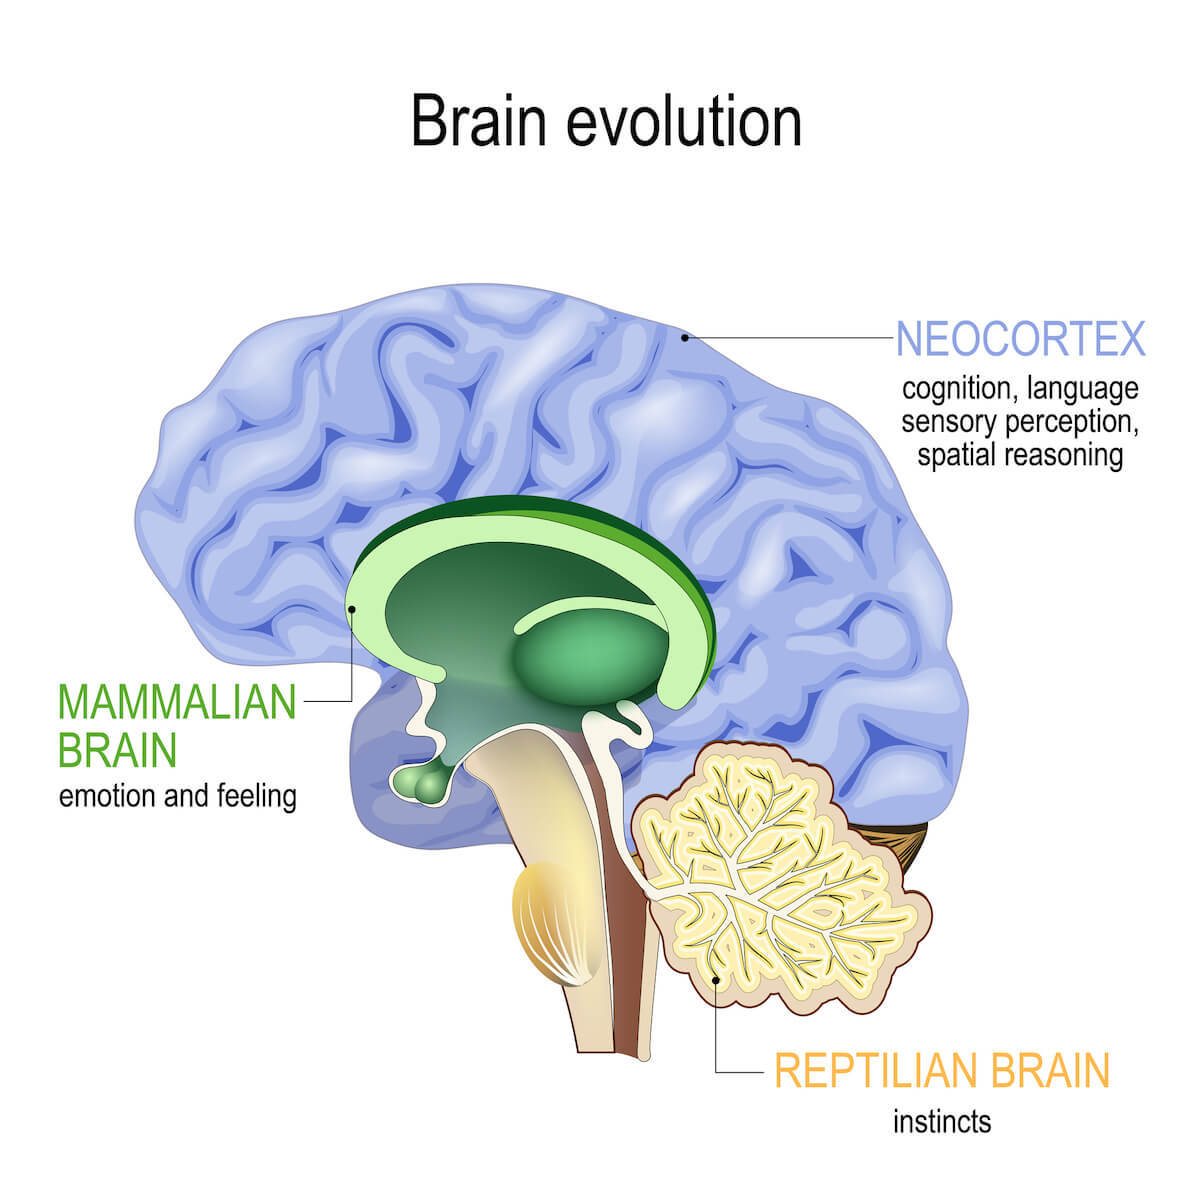 three areas of the evolutionary brain responsible for freezing up and fight or flight instincts